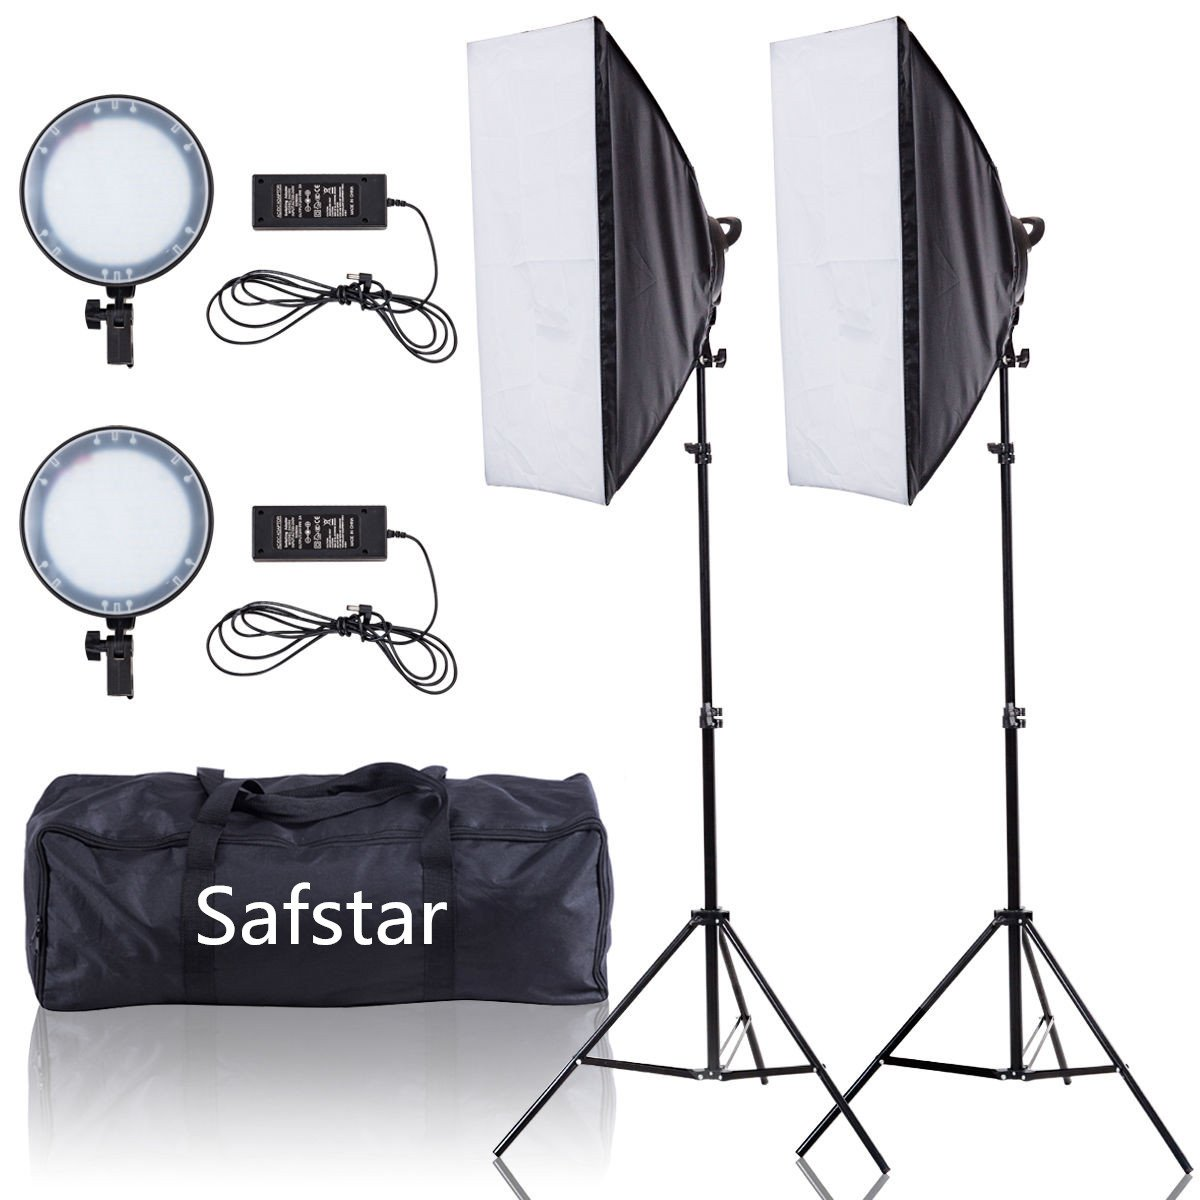 Safstar Photography Softbox LED Continuous Lighting Kit for Photo Video Studio 20''x27''(Day Light)